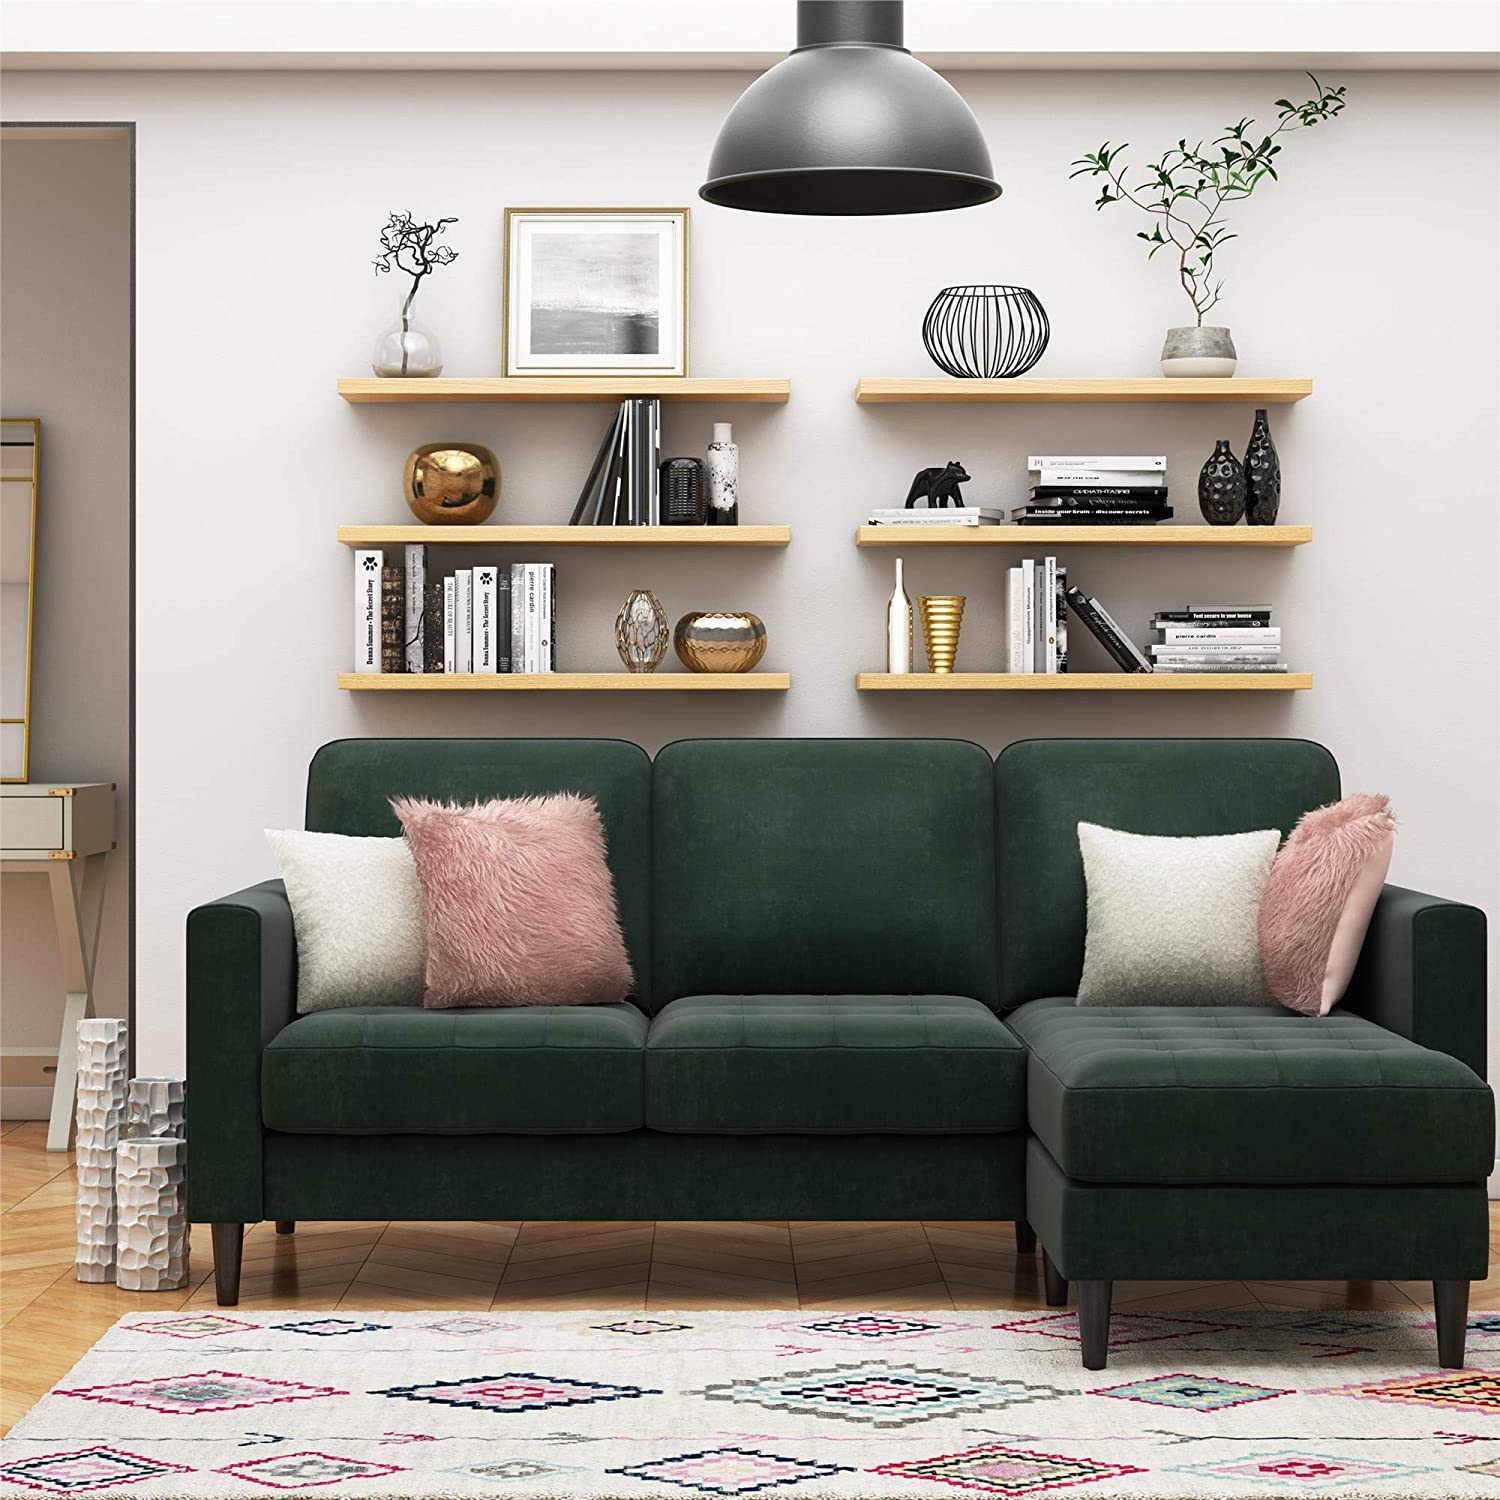 Amazon Com Cosmoliving Strummer Modern Reversible Sectional Couch Upholstered In Green Velvet Fabric With Floating Ottoman Furniture Decor